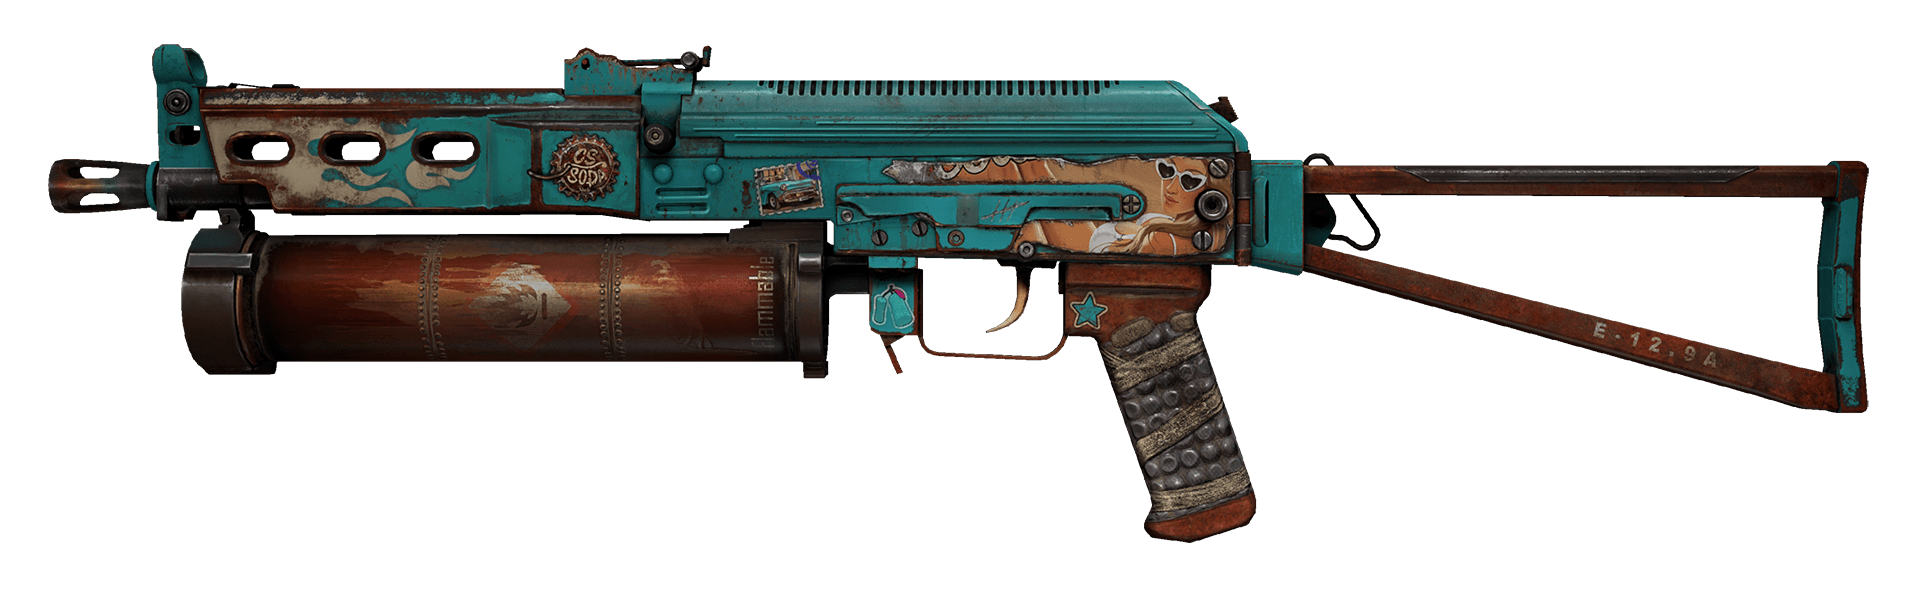 Pp bizon cs go skins betting zcash crypto currency price